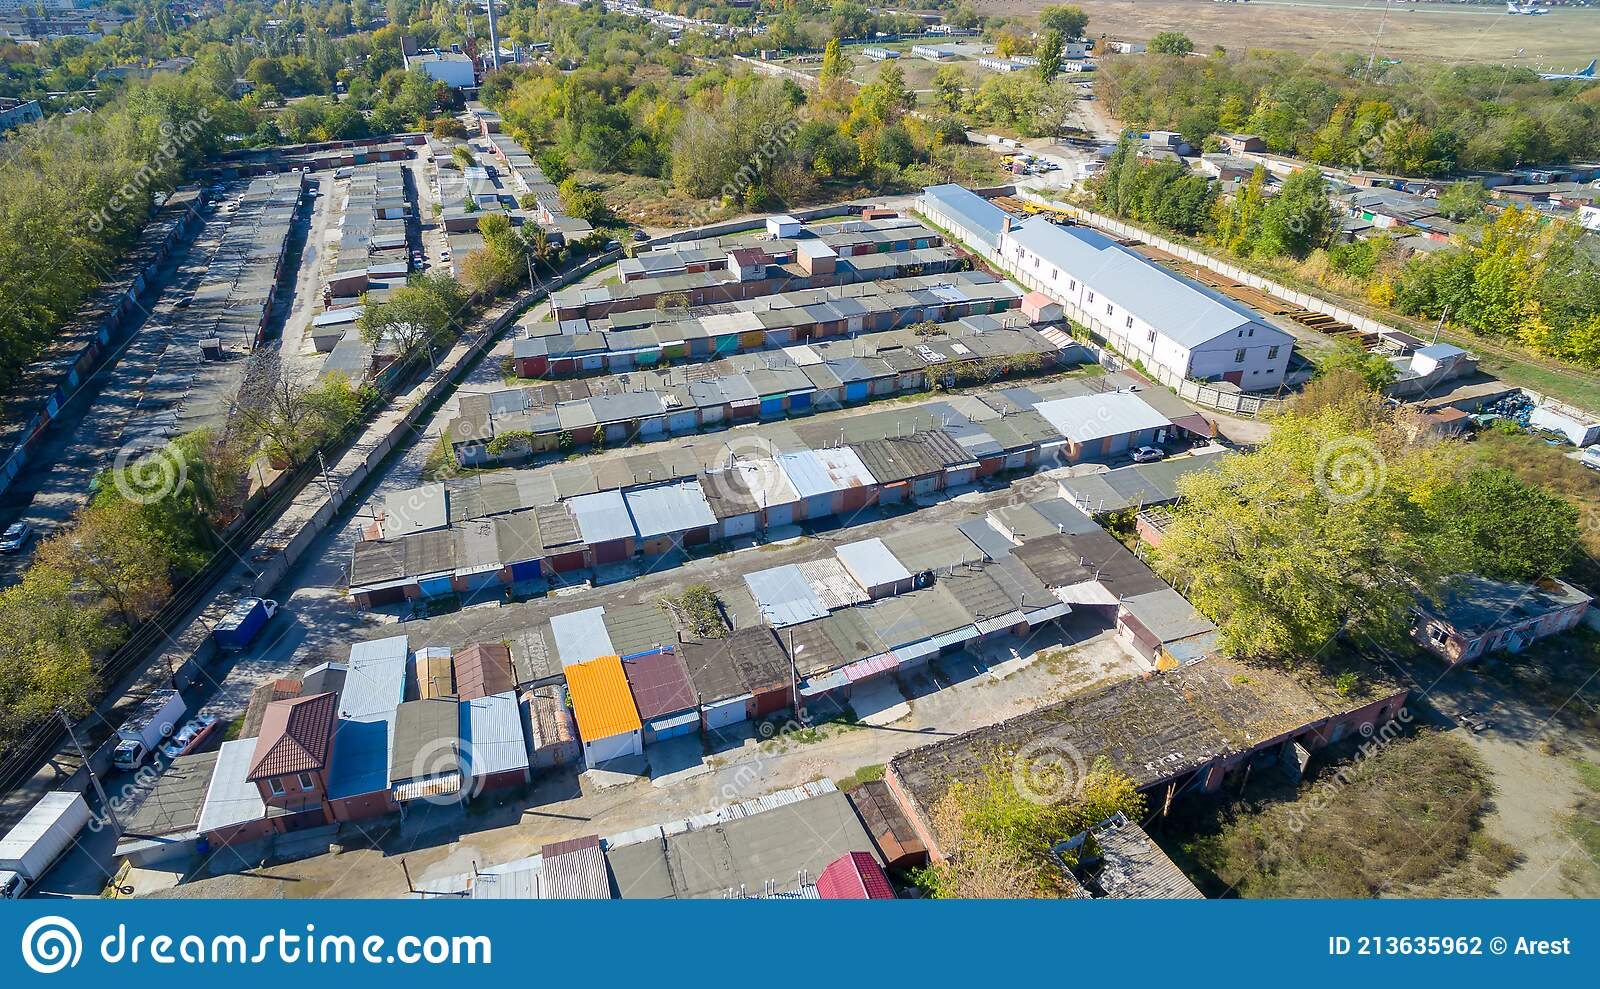 old-garages-view-above-drone-many-213635962.jpg